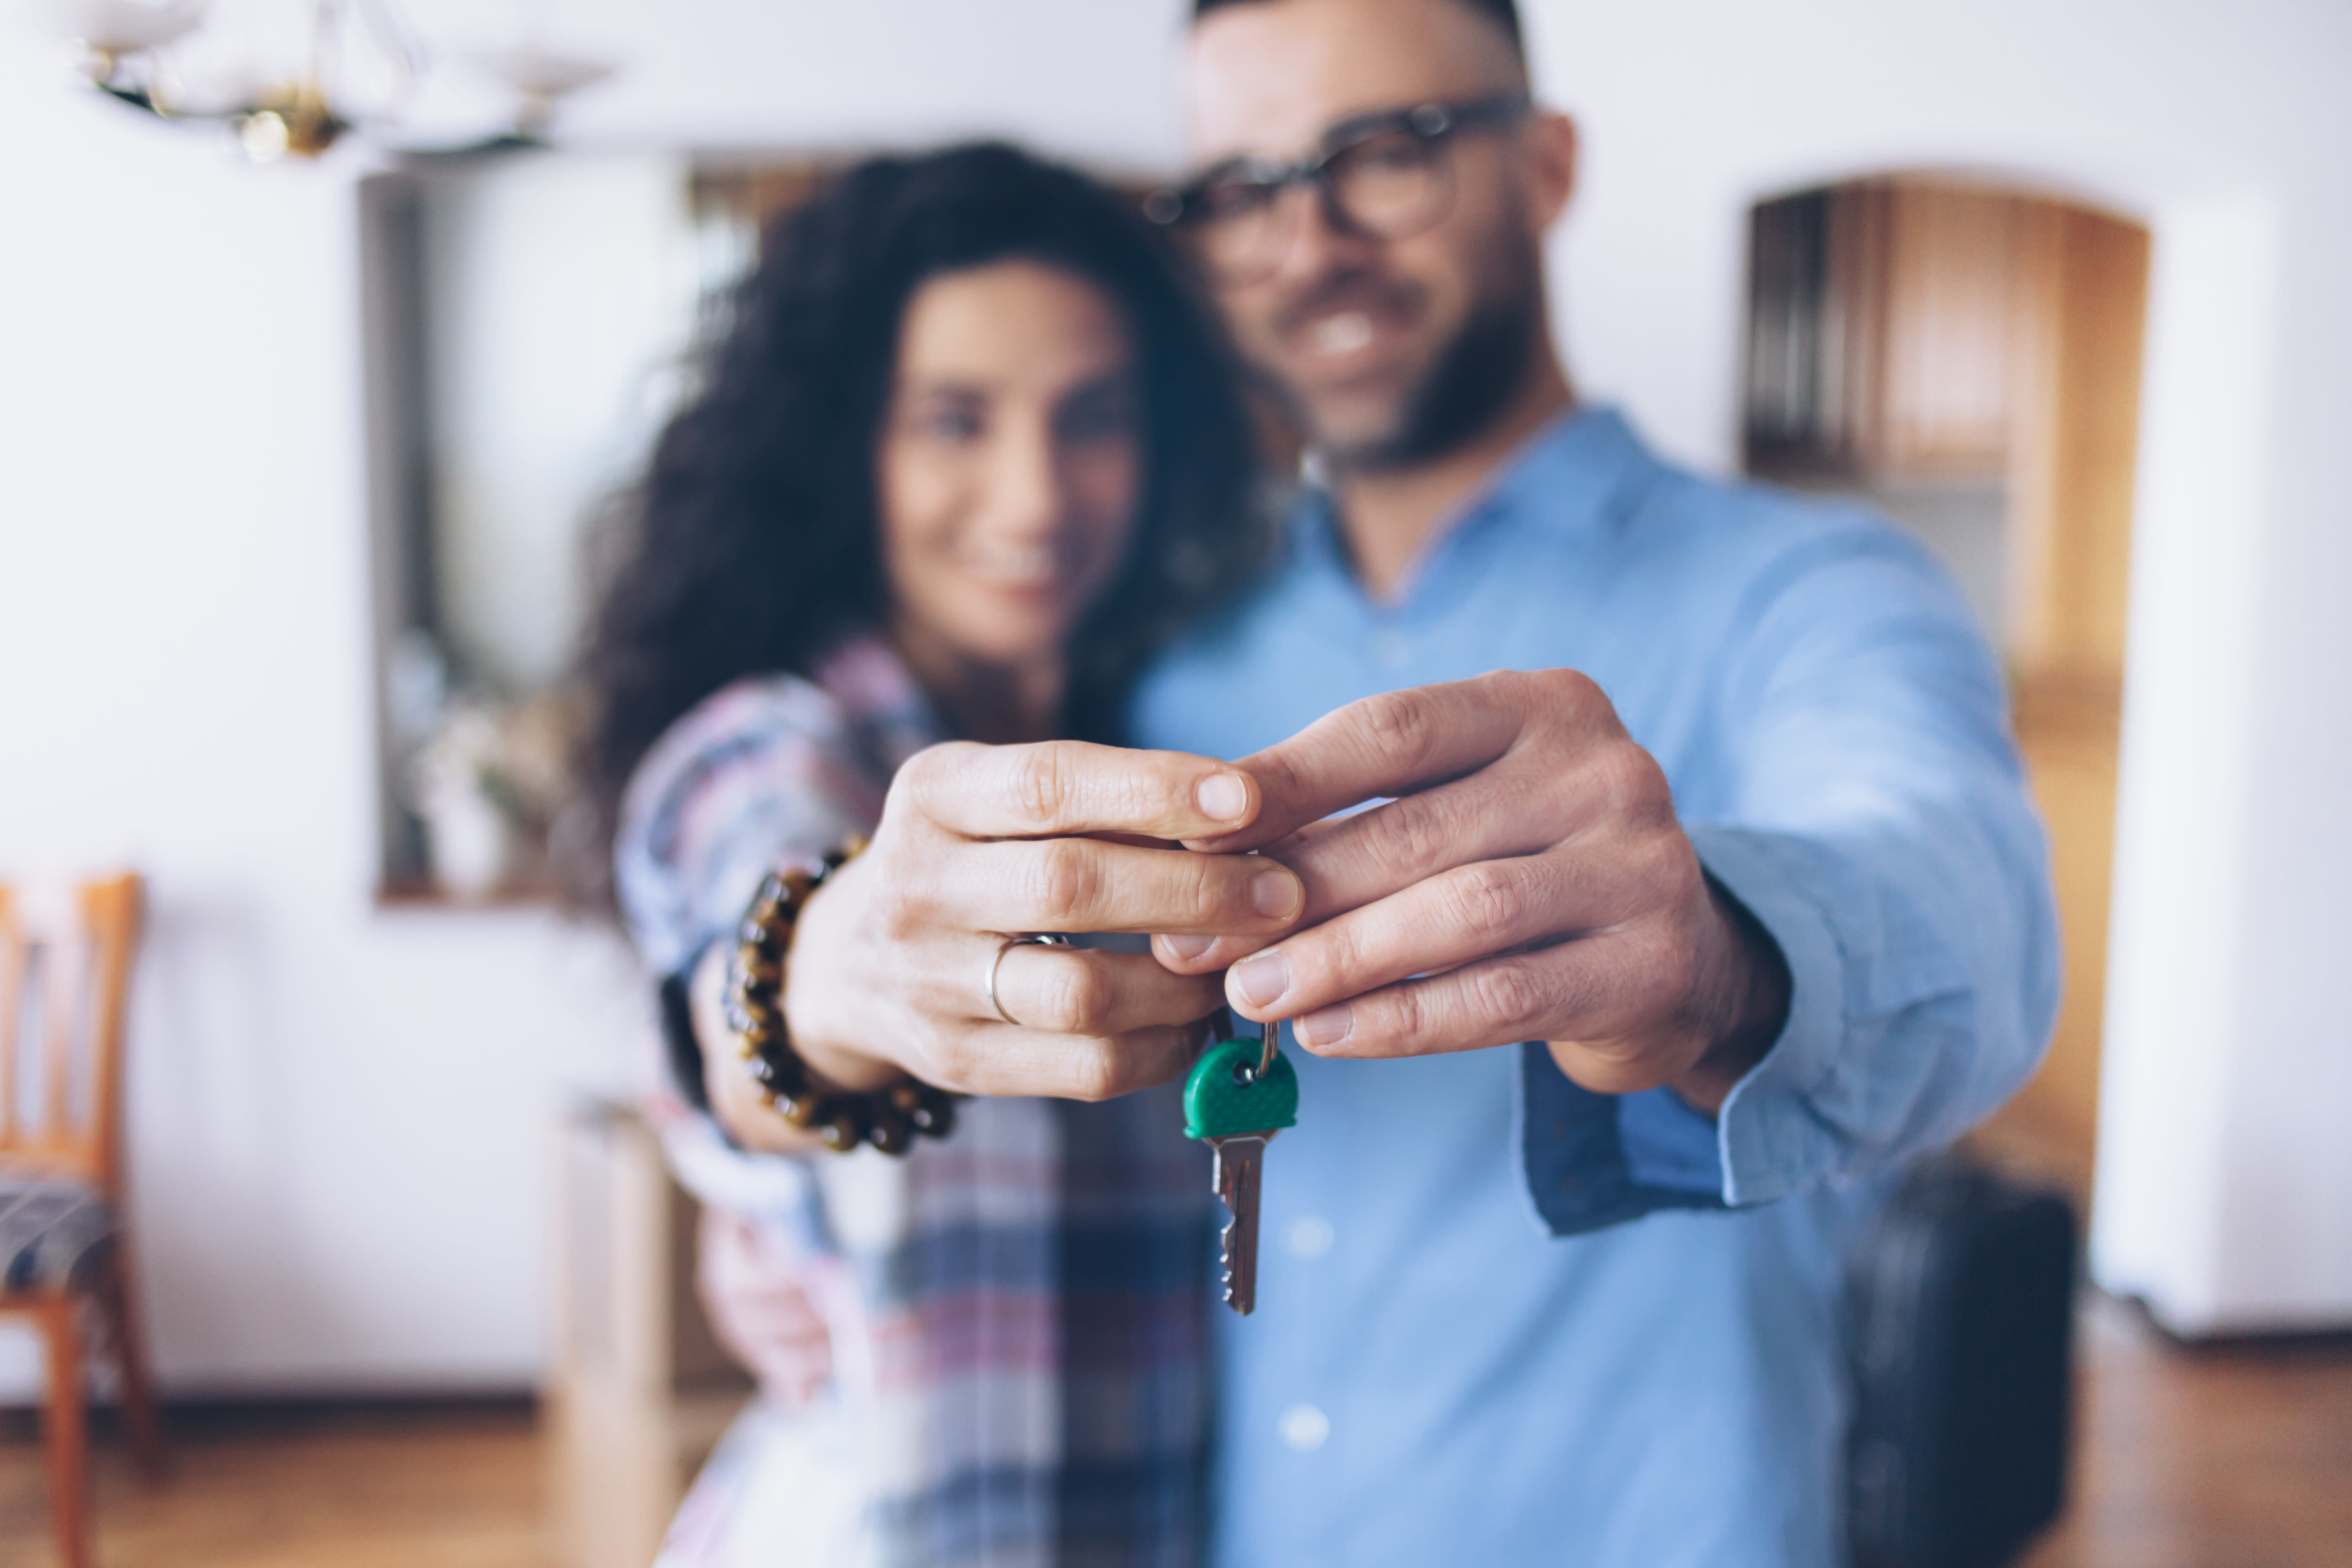 The growing problem of mortgage fraud among millennials